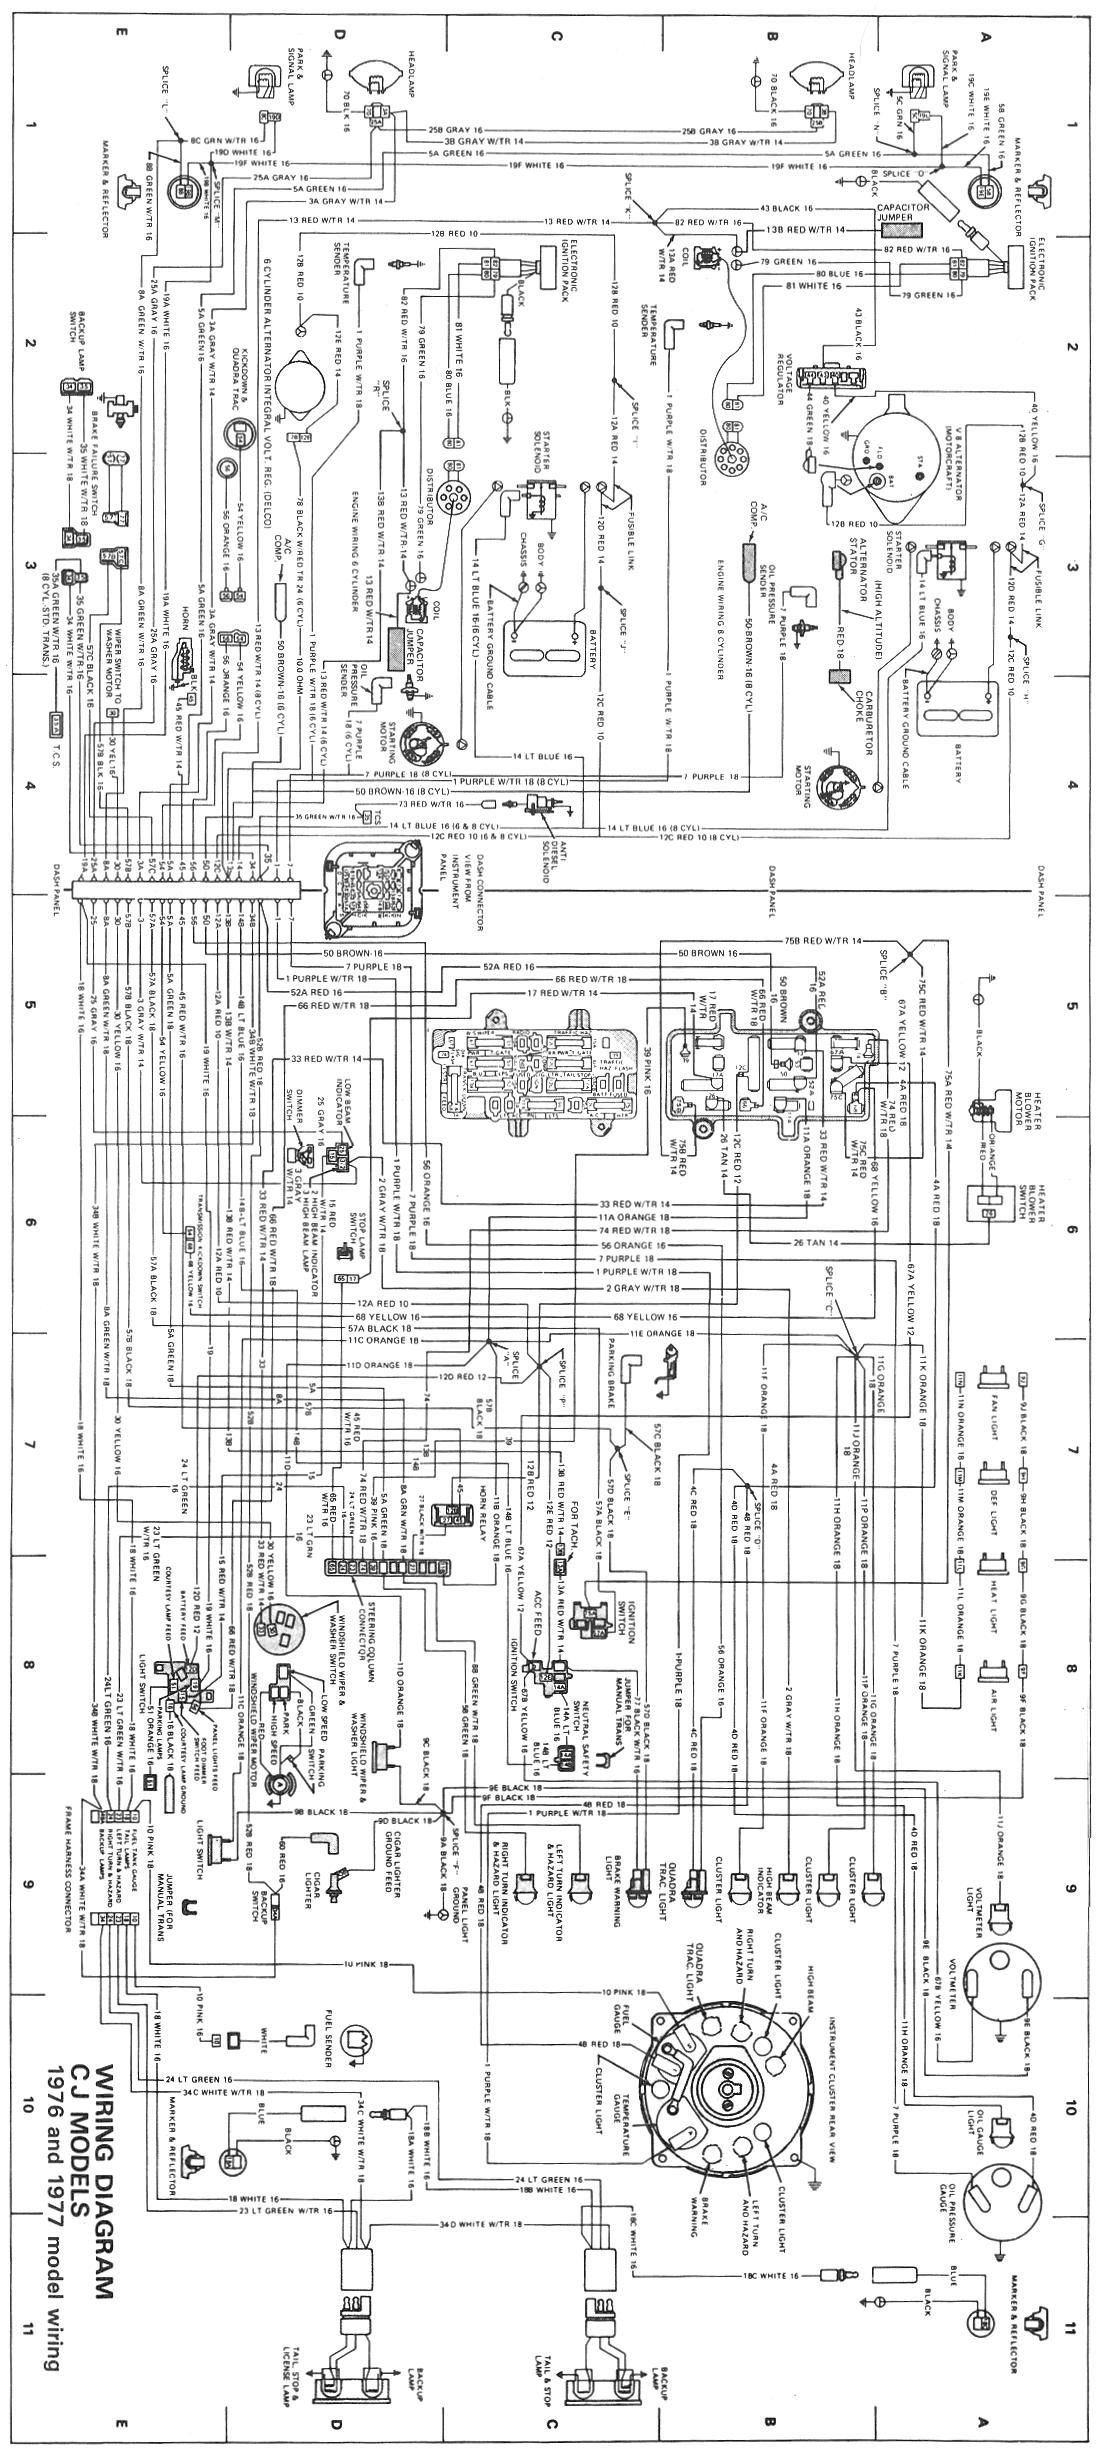 8d25ded6e3673519e155875e09844e5e cj wiring diagram 1976 1977 jpg 1,100�2,459 pixels 1976 jeep cj5 scout ii ignition wiring diagram at cos-gaming.co